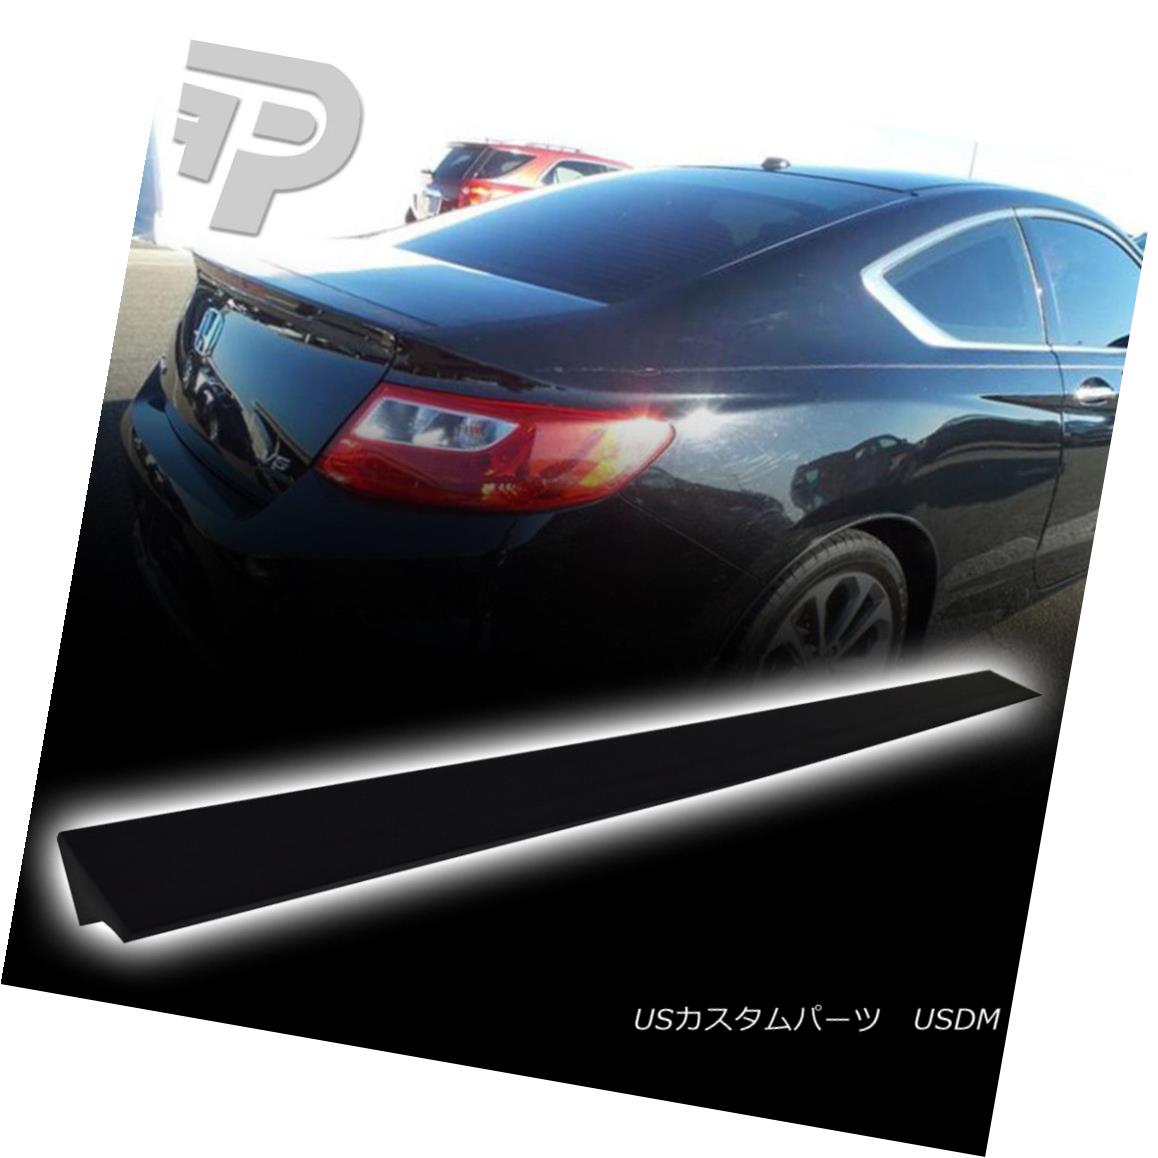 エアロパーツ Unpainted PUF Rear Roof Spoiler For HONDA Accord 9th 2017 EX-L LX Sedan 4DR HONDAアコード用未塗装PUFリアルーフスポイラー9th 2017 EX-L LXセダン4DR